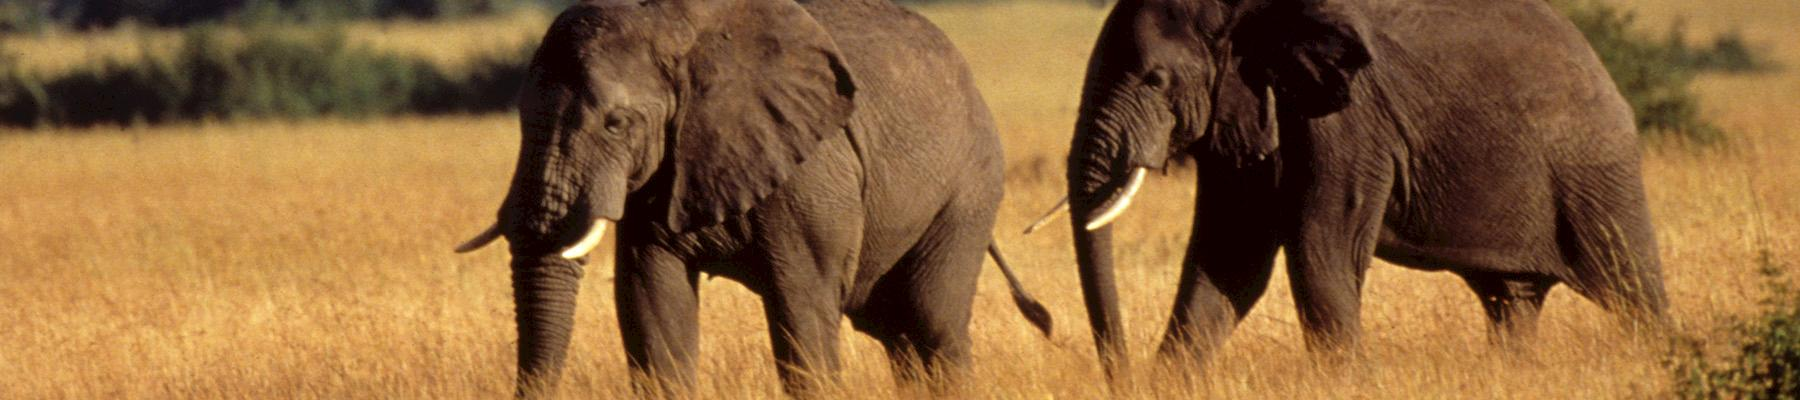 Two African elephants Loxodonta africana © Howard Buffett / WWF-US